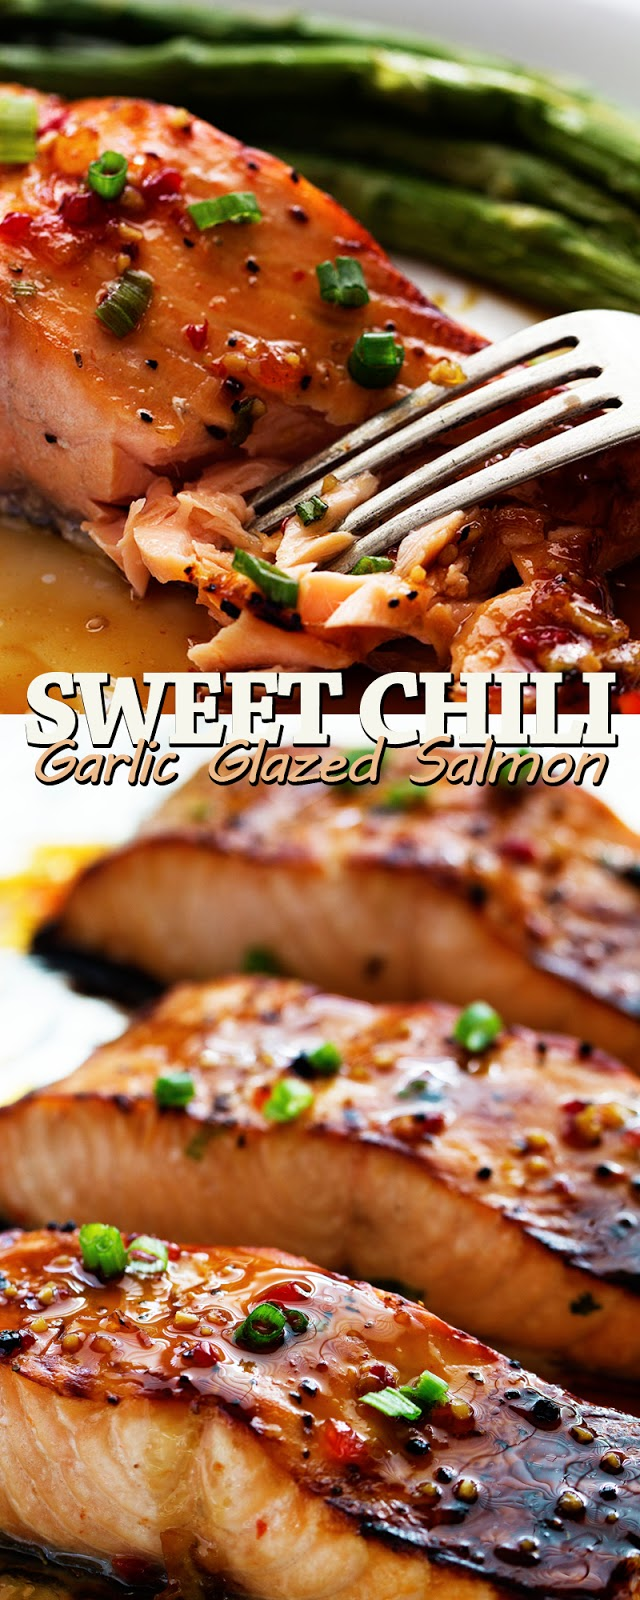 SWEET CHILI GARLIC GLAZED SALMON